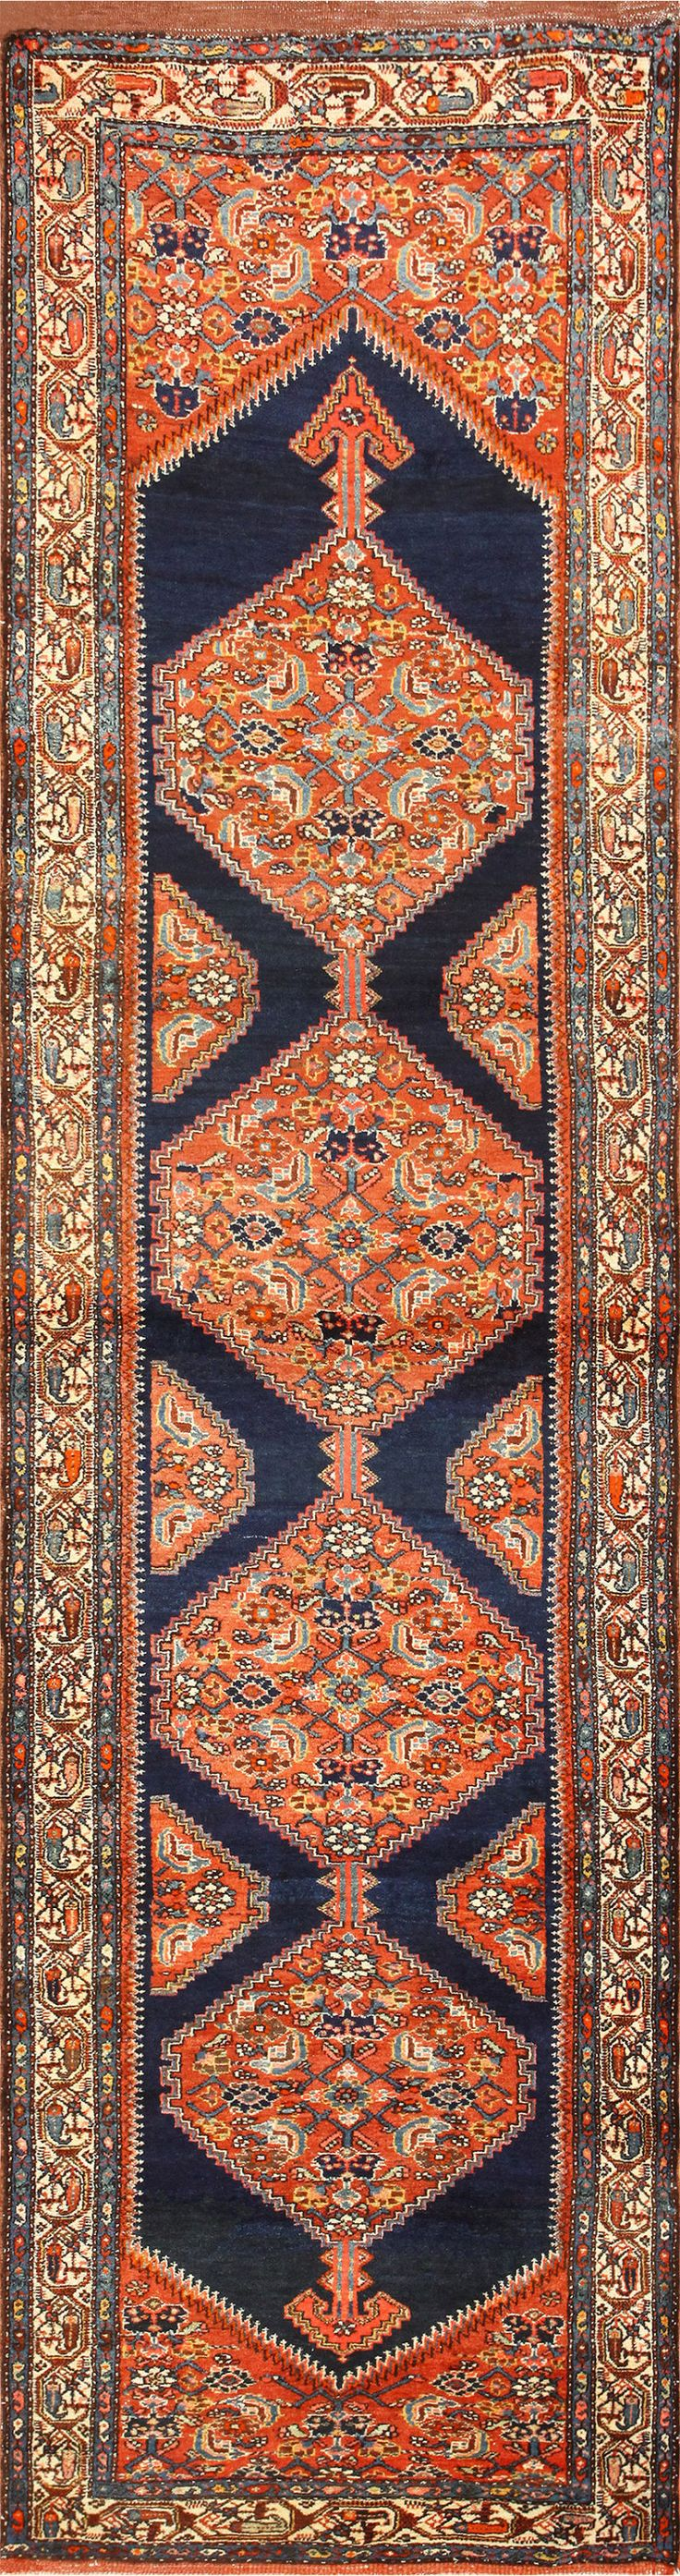 8351 best Tribal rugs images on Pinterest Carpets 19th century